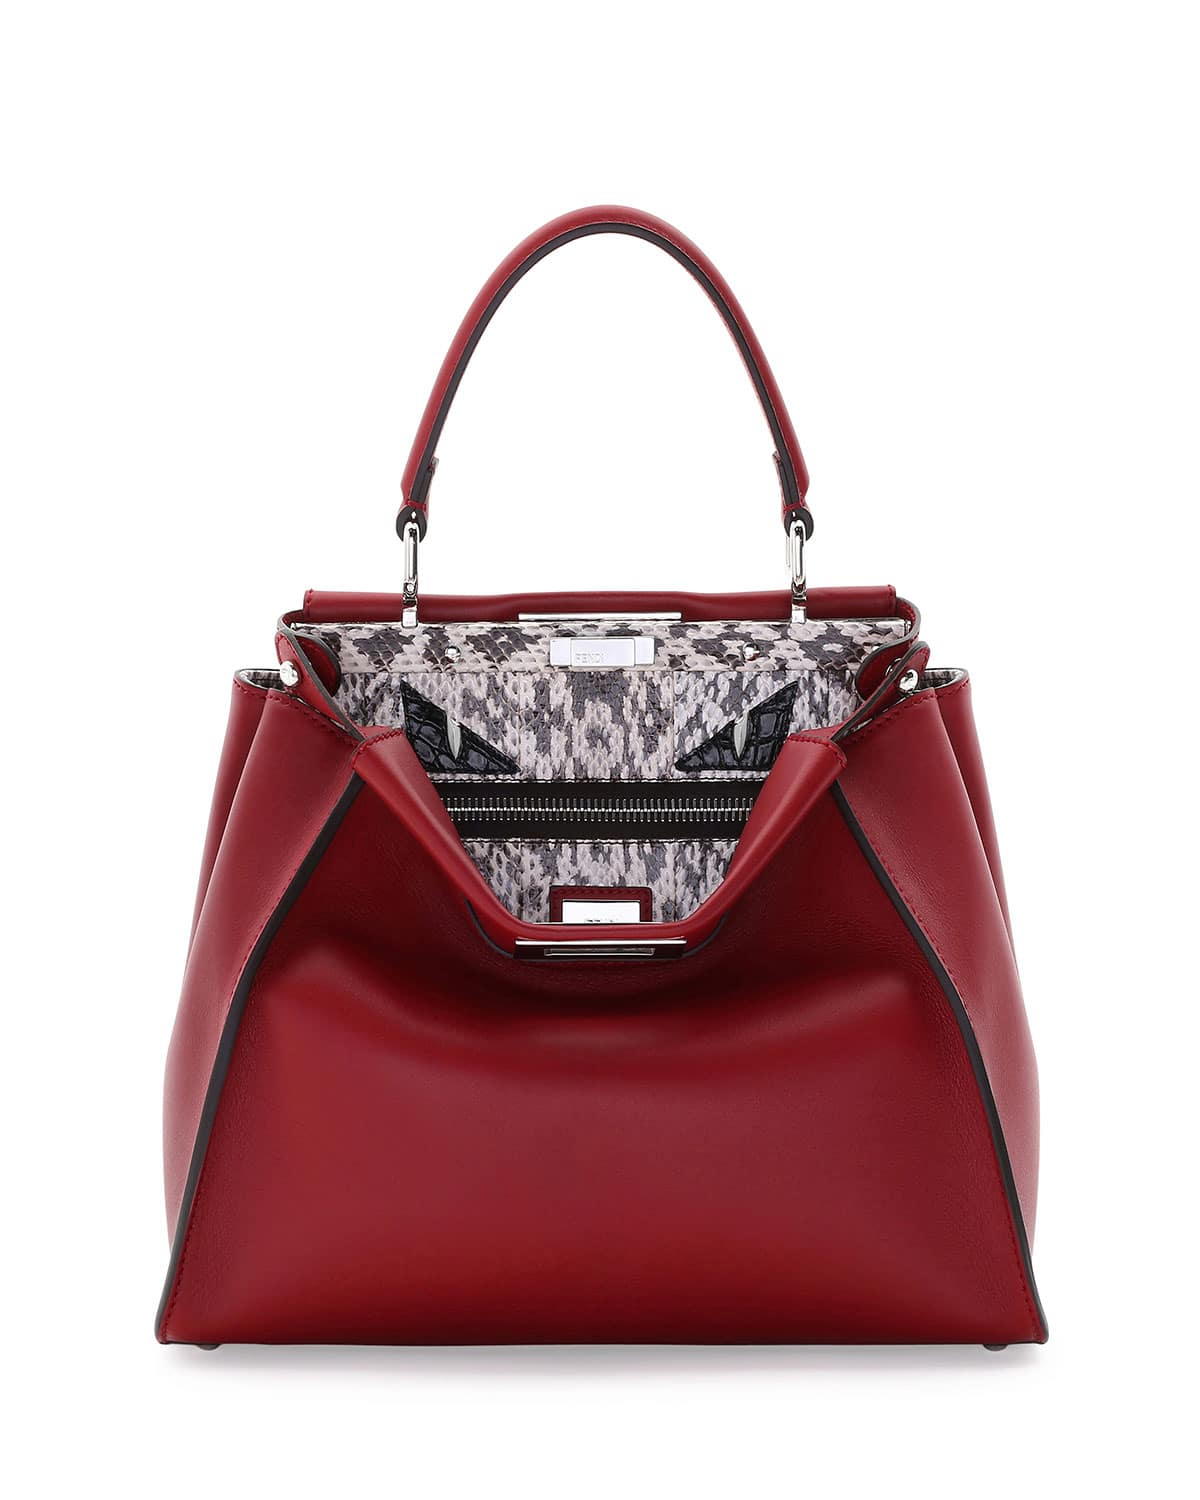 1e3113839df5 Fendi Red Leather Snakeskin Monster Eyes Peekaboo Bag